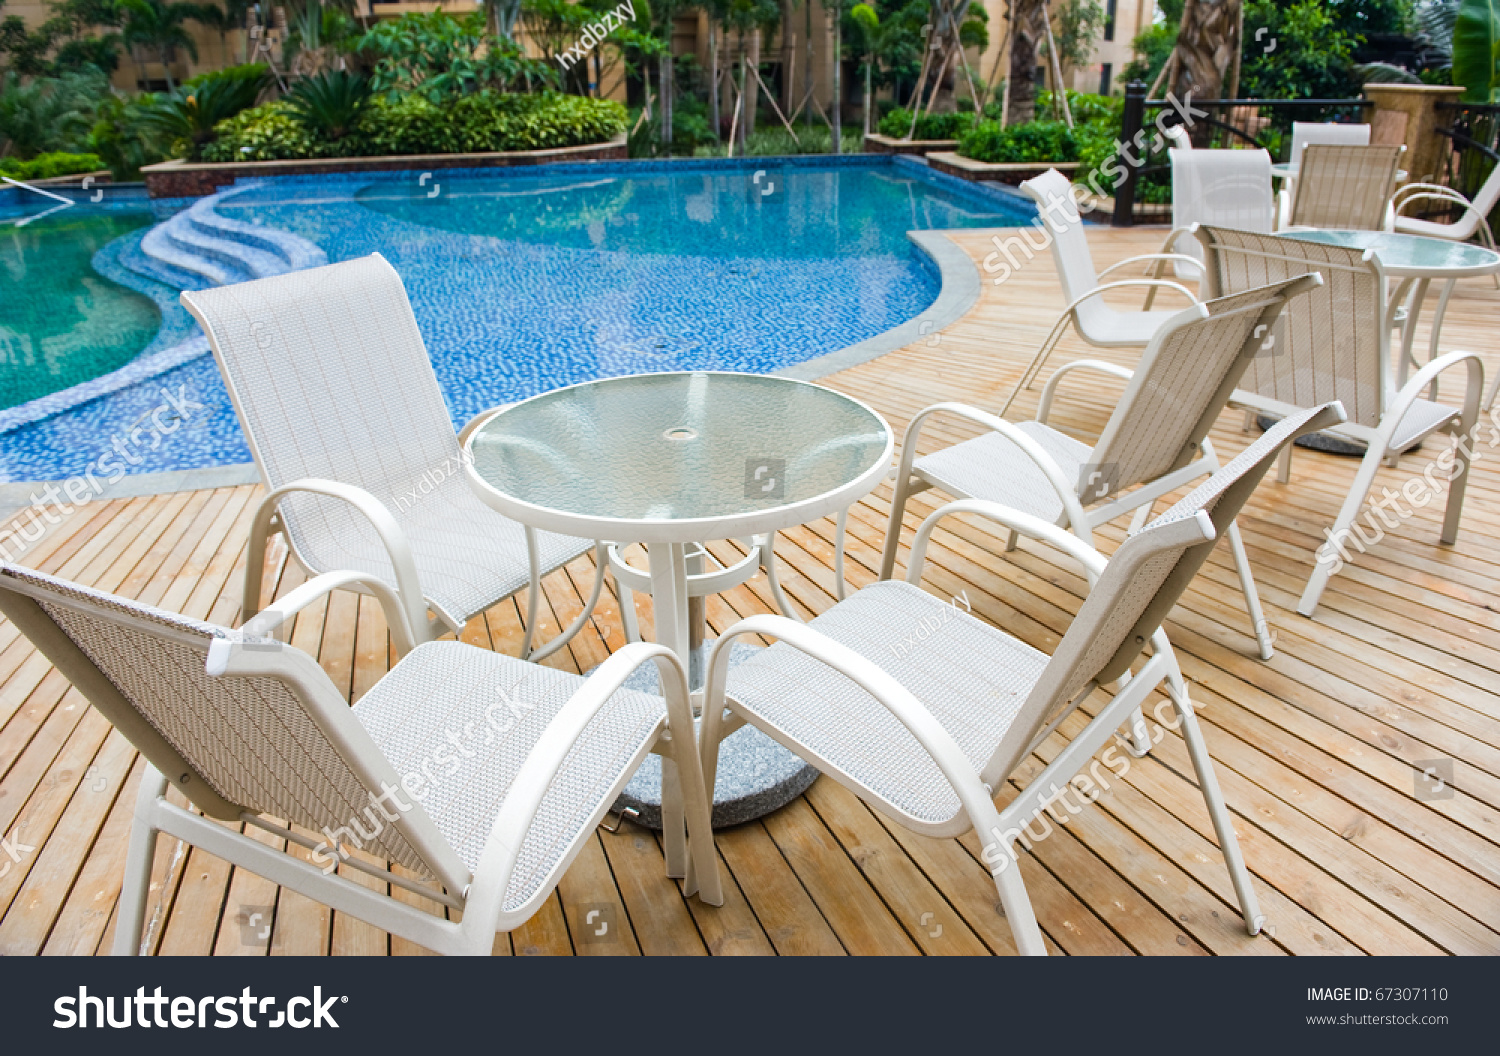 Chairs And Tables Next To A Swimming Pool Stock Photo 67307110 Shutterstock